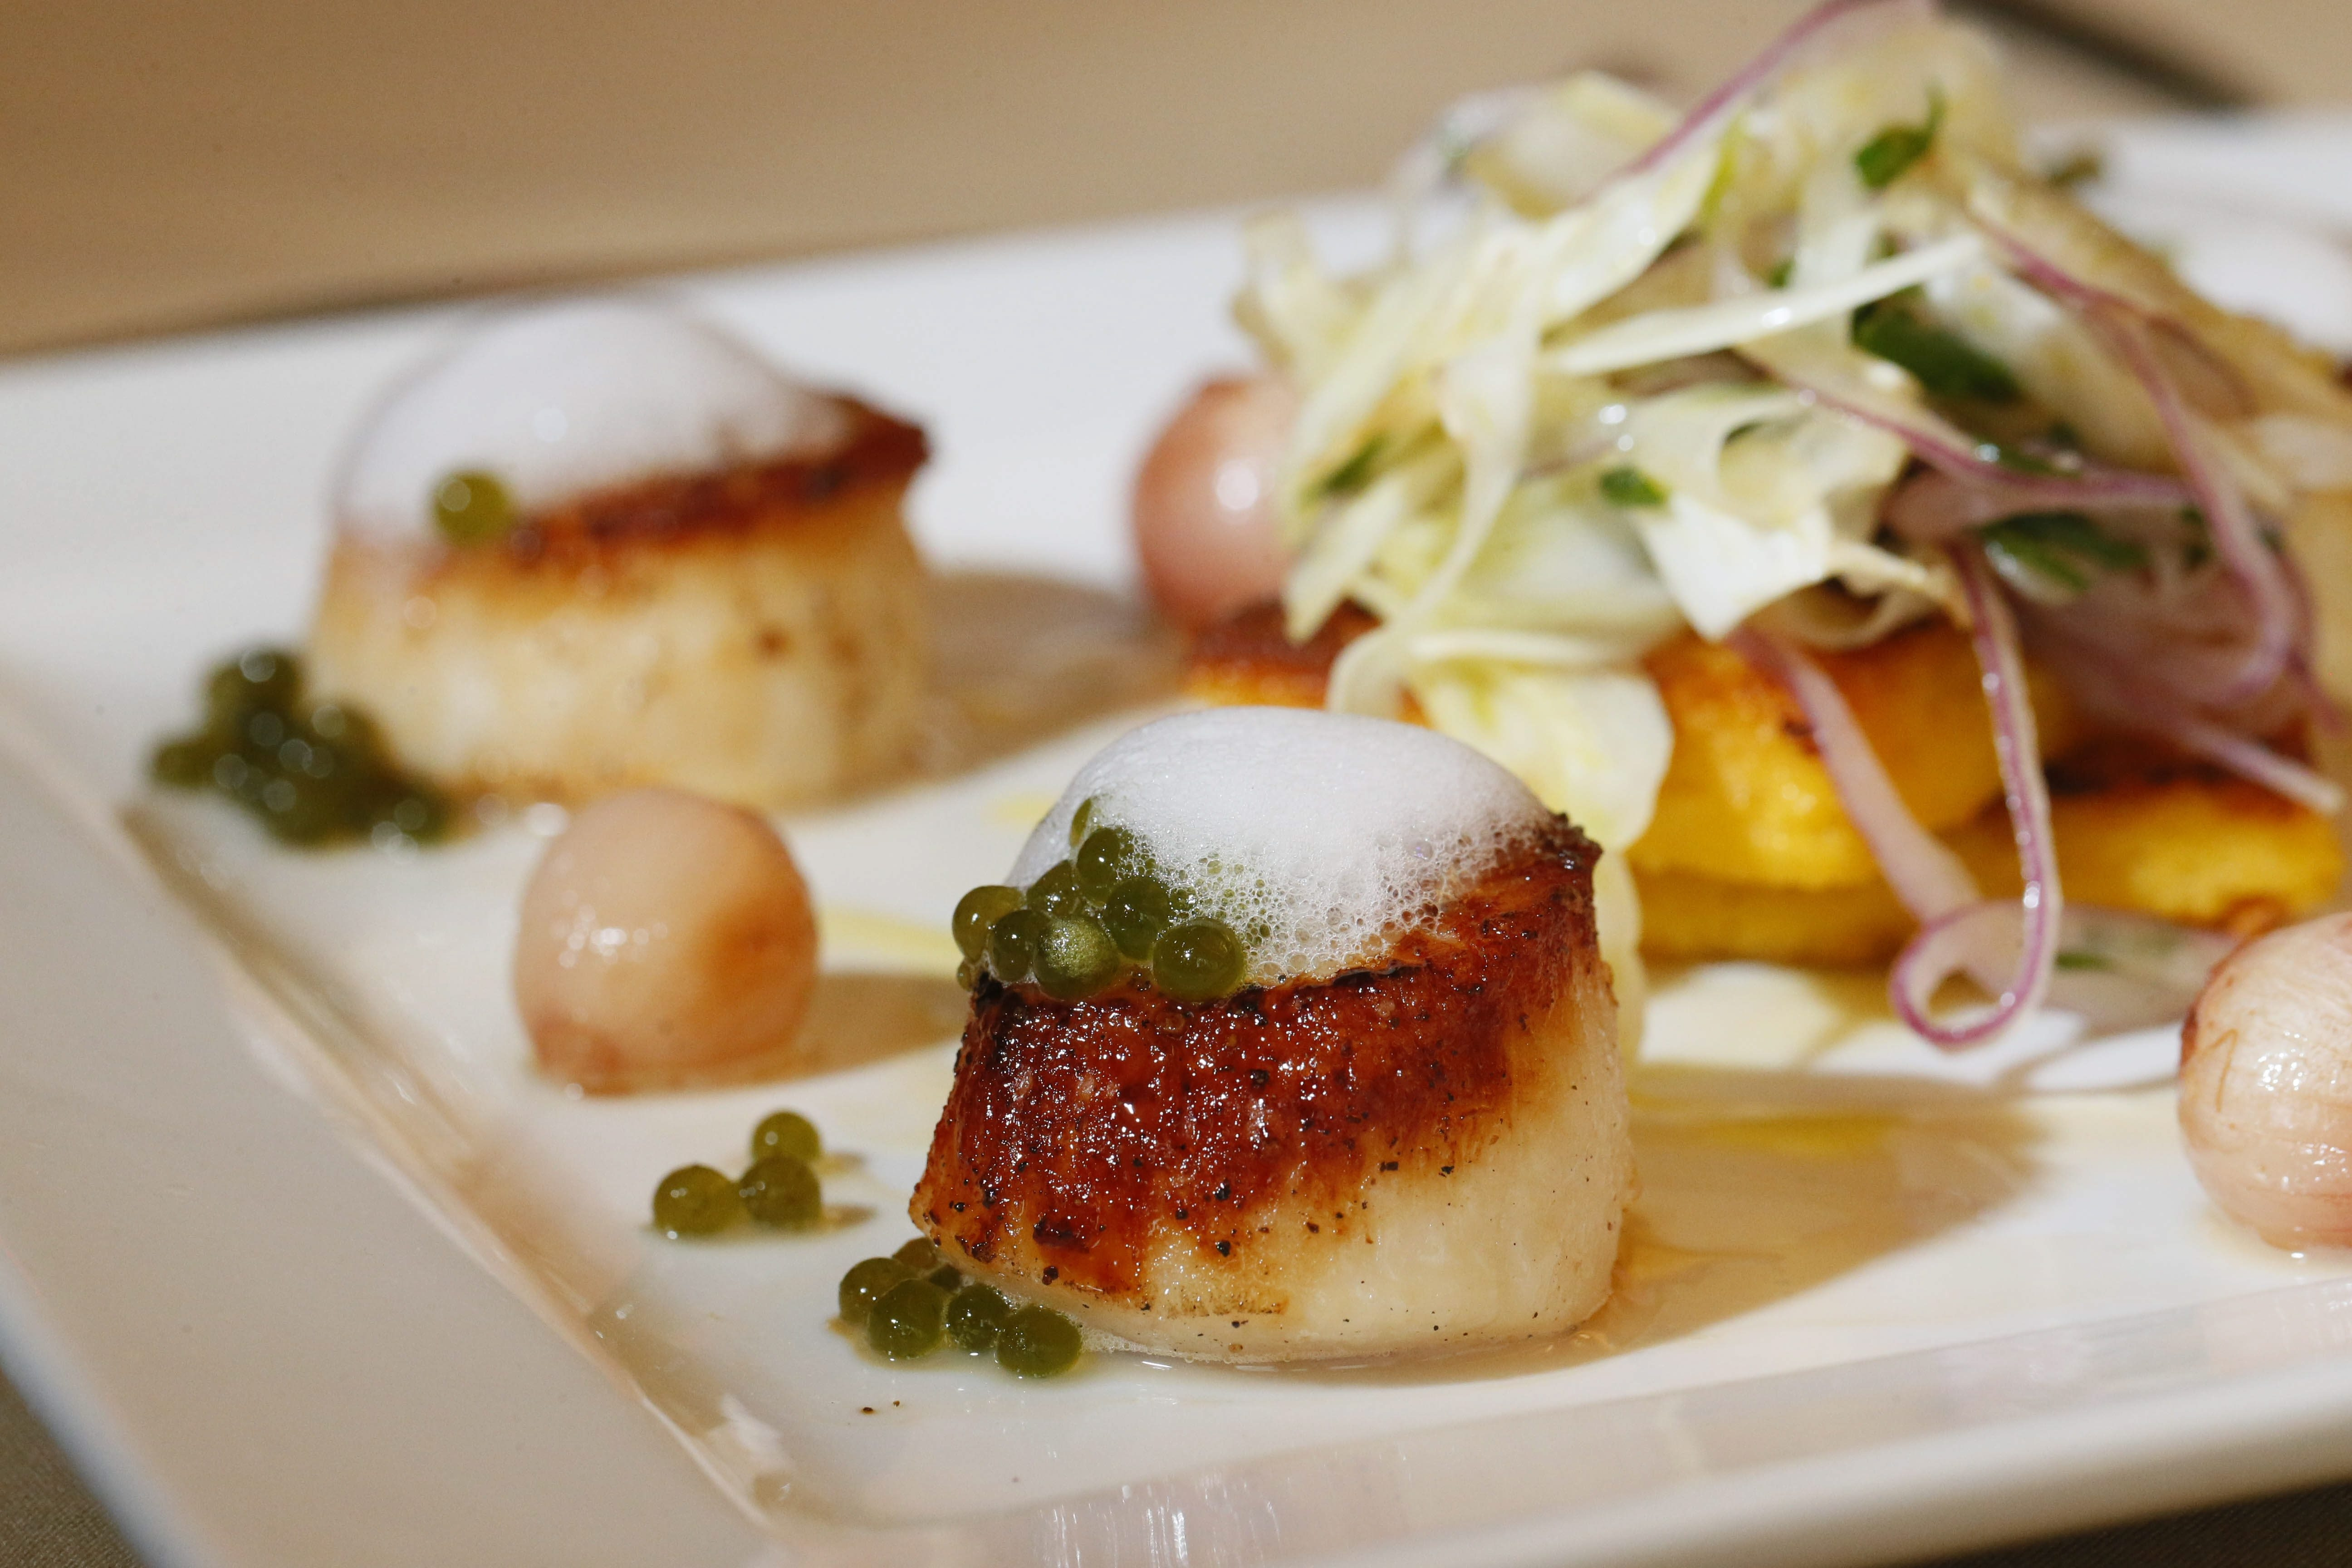 Scallops, topped with lemon-thyme foam and basil pearls, served with polenta, fennel salad and beurre blanc at Savor, the restaurant in the Niagara Culinary Institute in Niagara Falls.  (Derek Gee/Buffalo News)